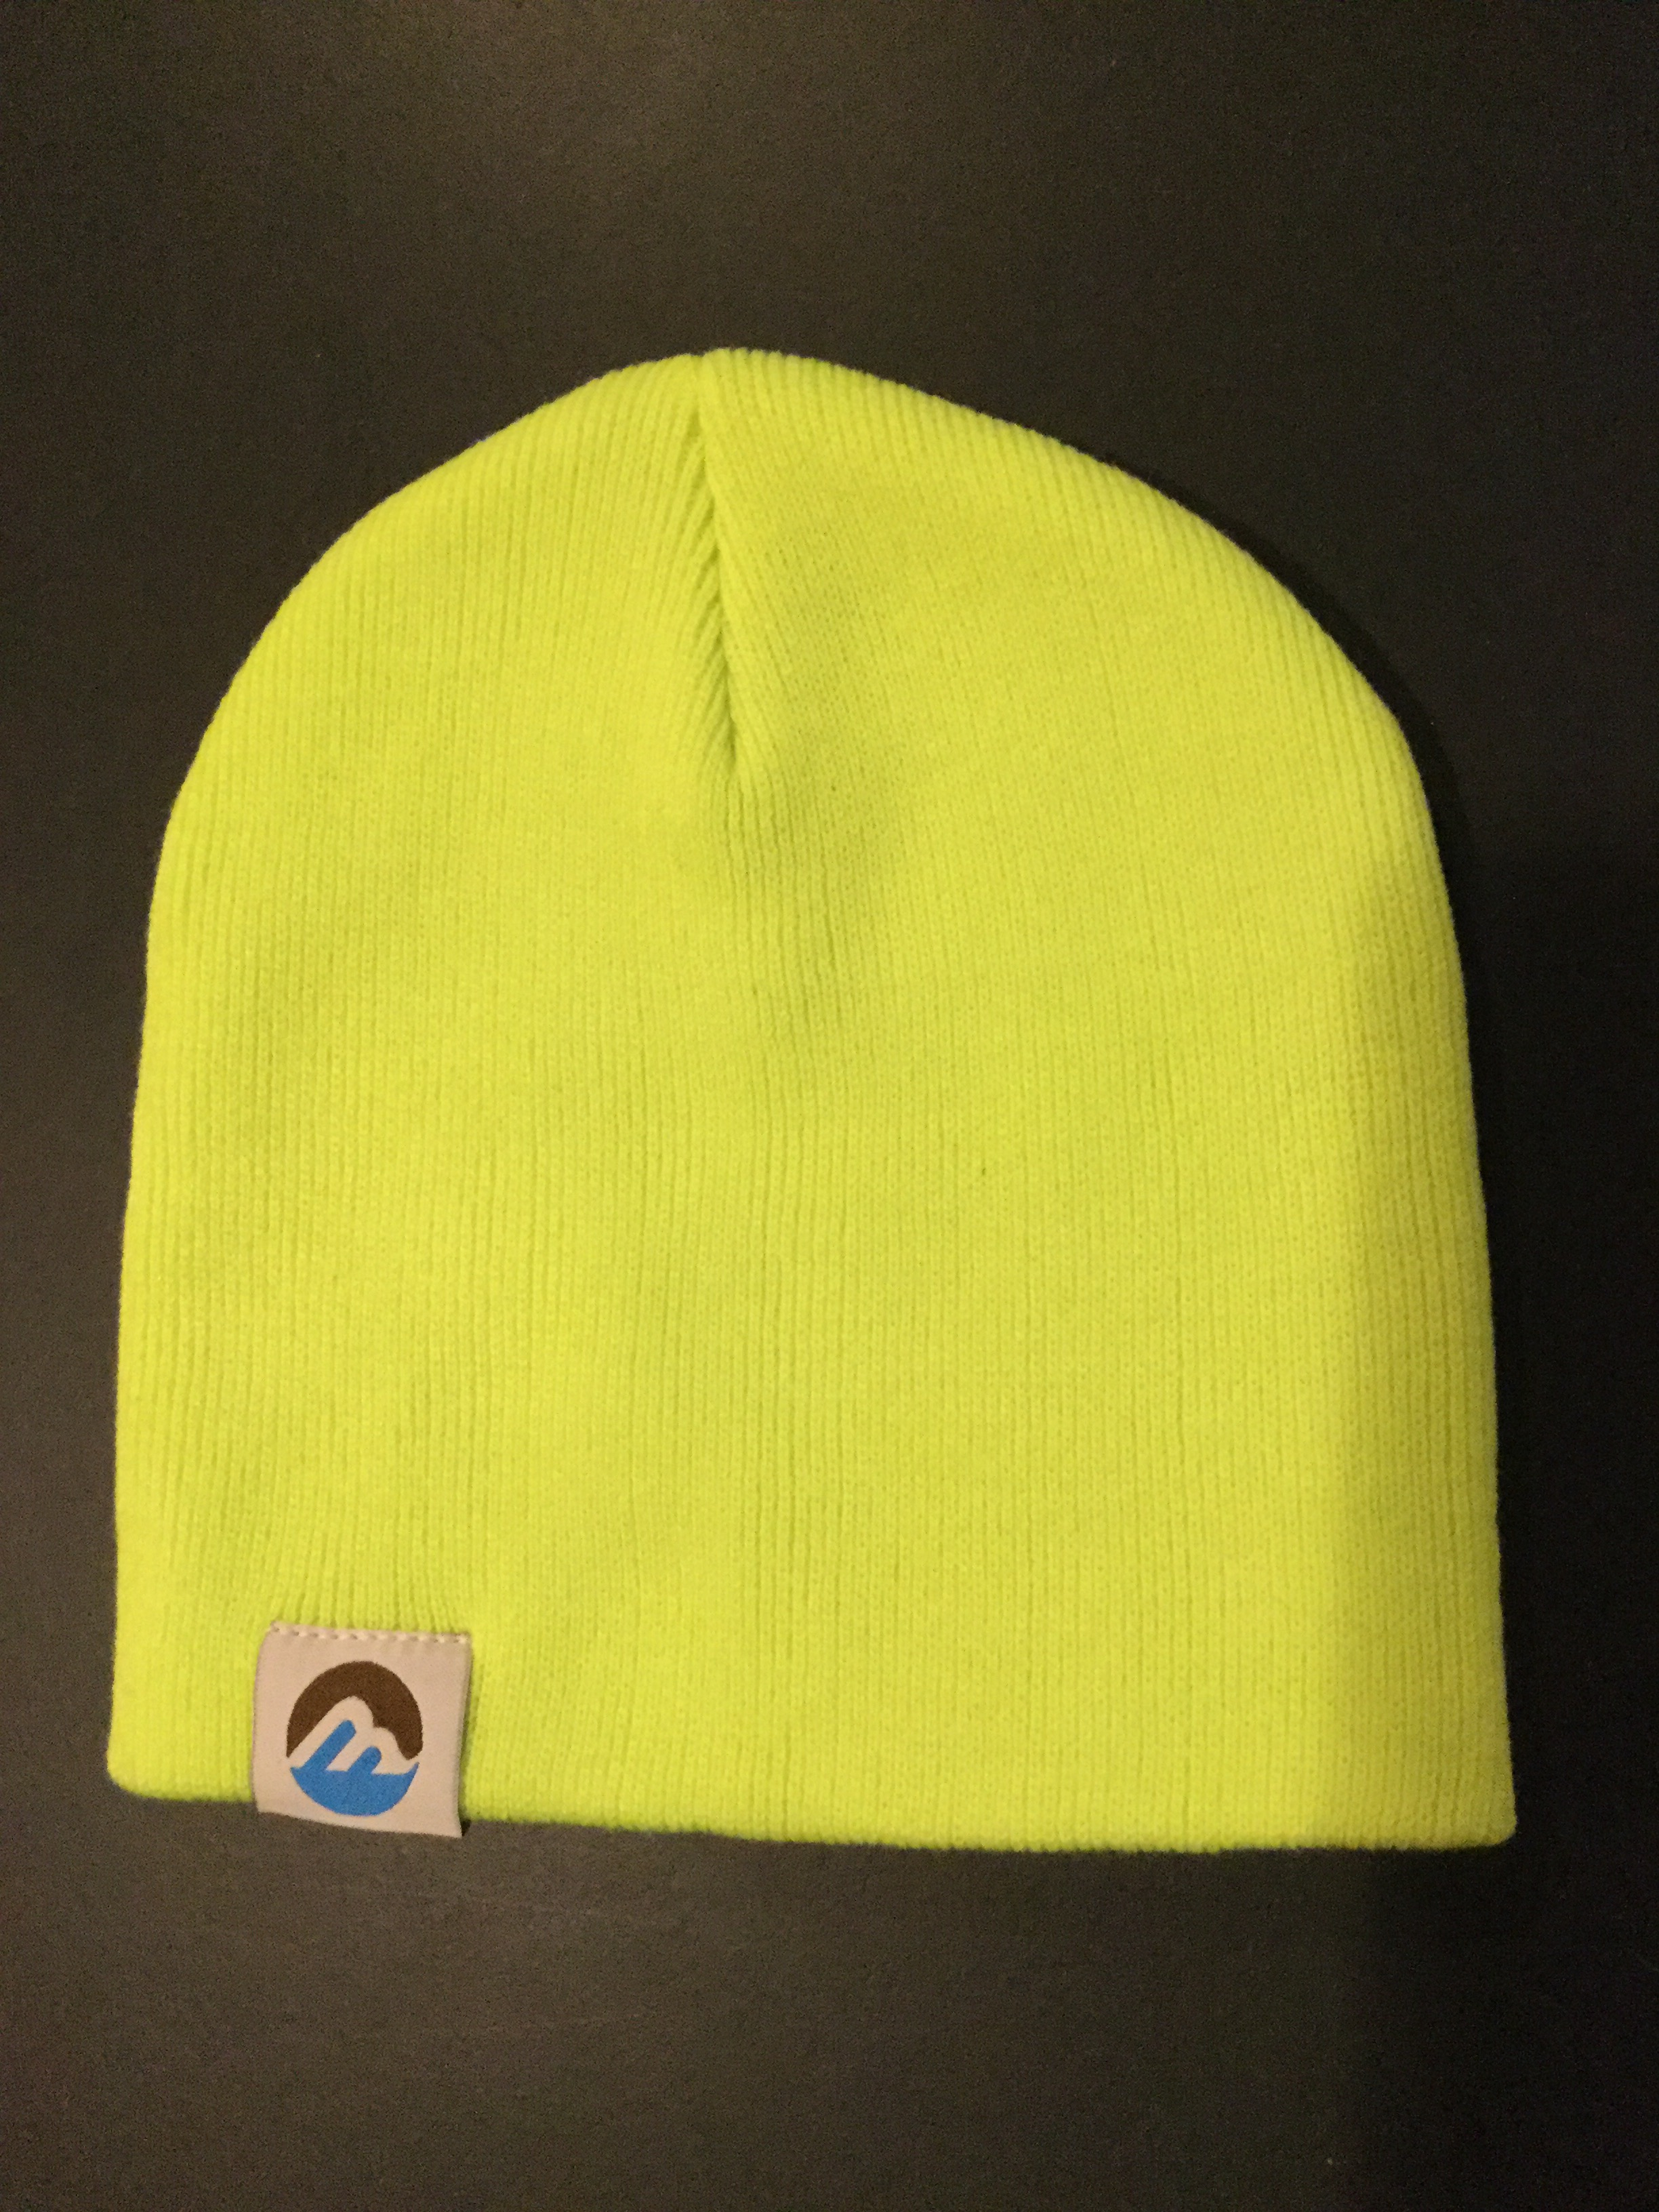 00eff4a496a Michigan Runner Girl Knit Beanie Hat • Michigan Runner Girl